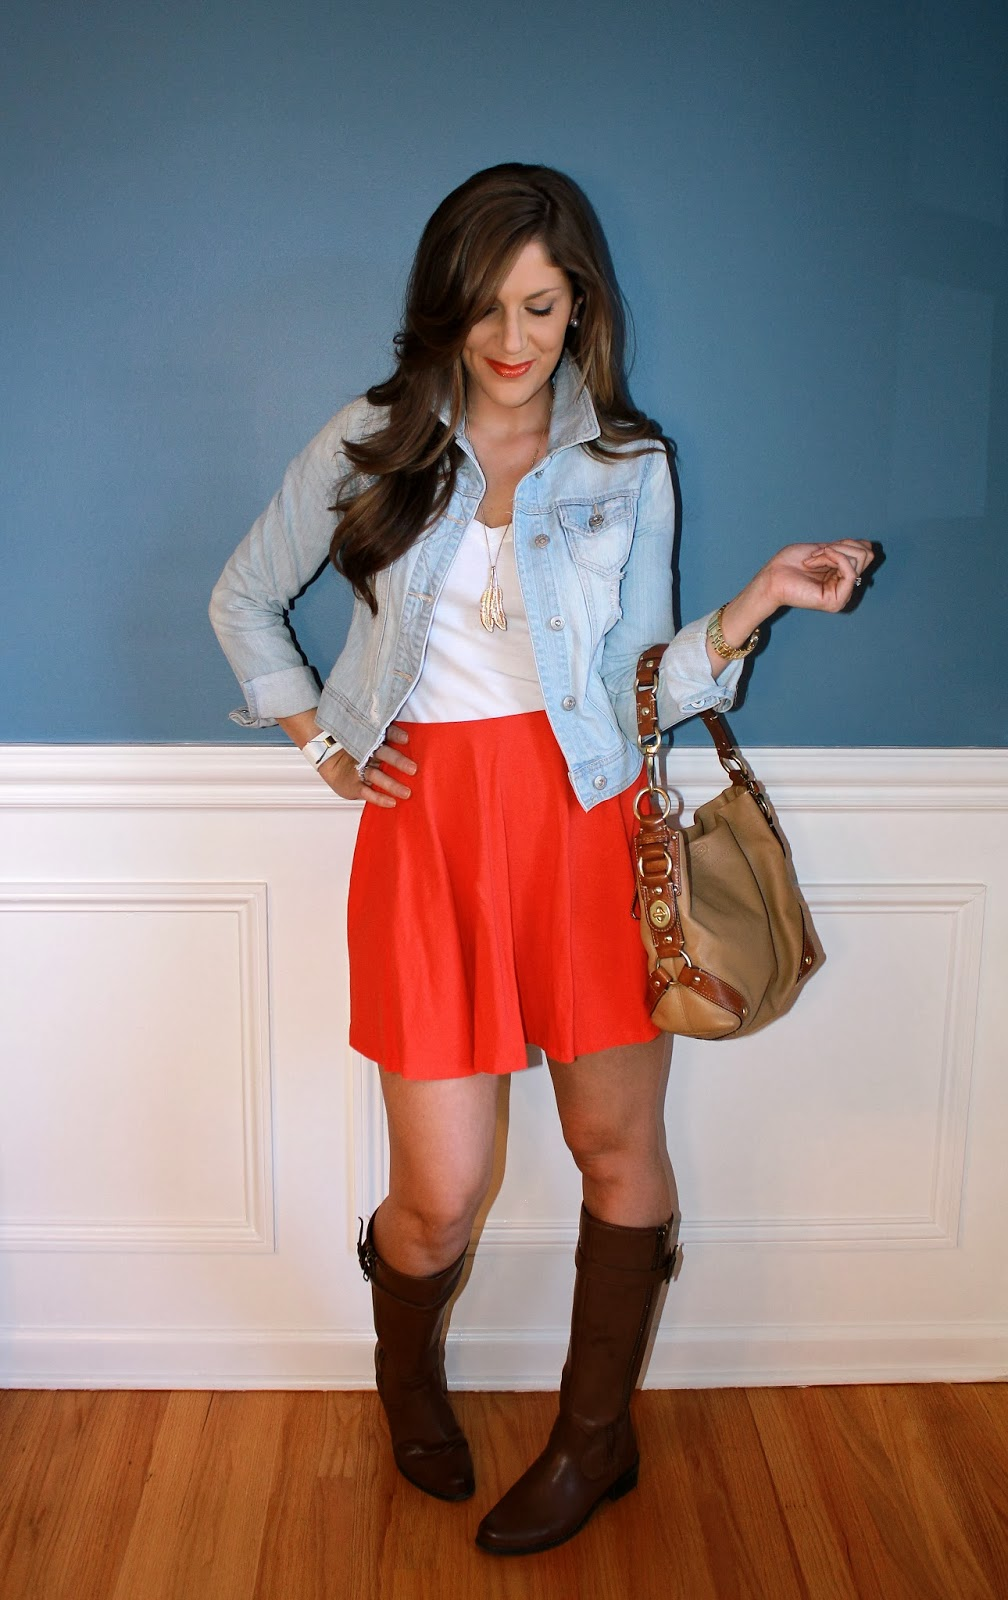 b4d7df82efe86 Outfitted411: Summer Skirt Turned Fall...